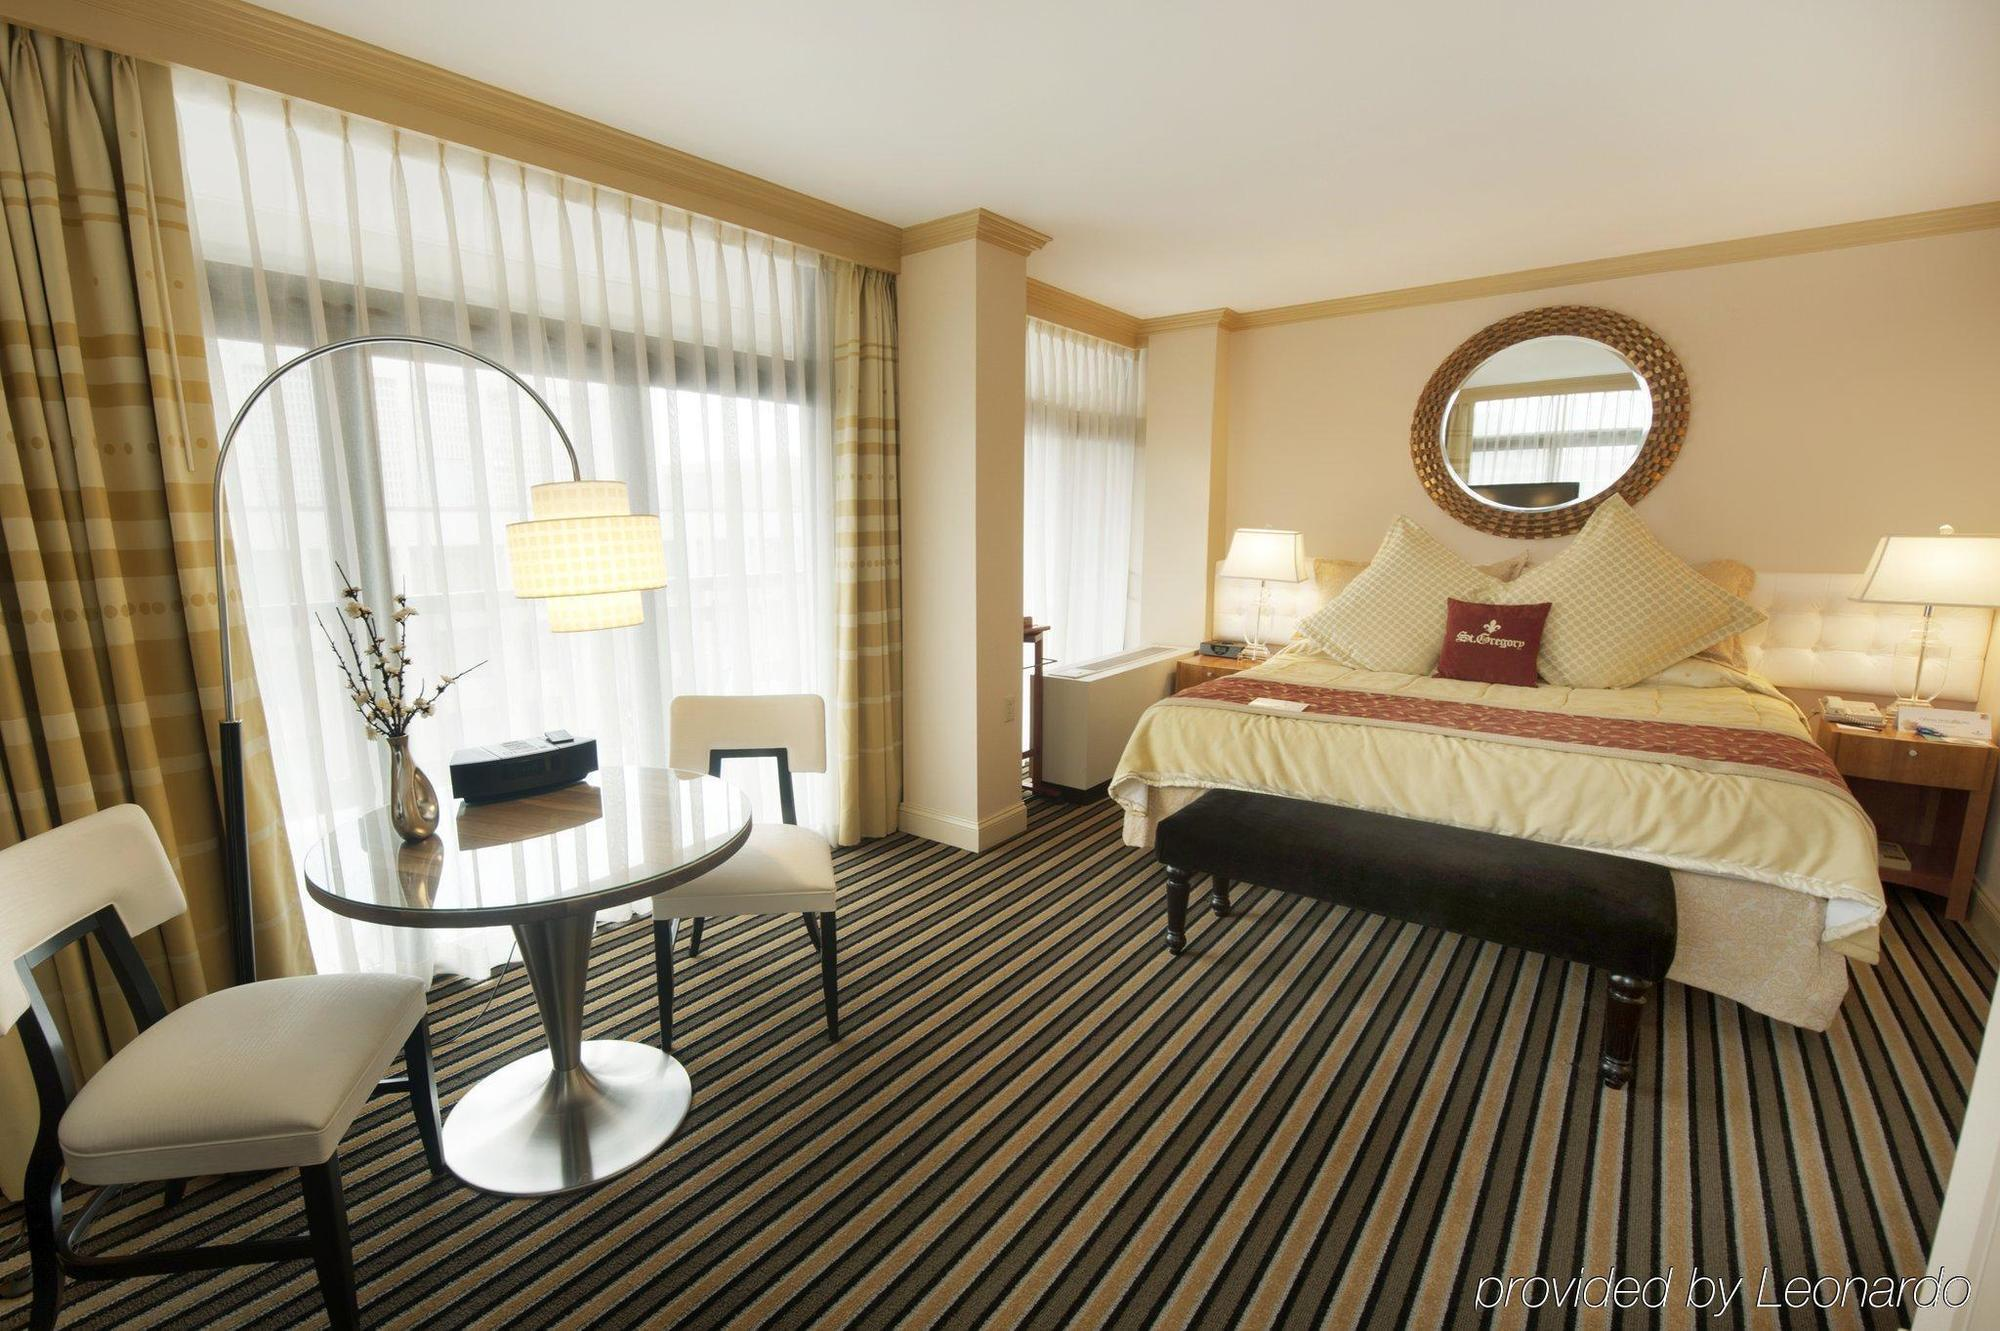 St. gregory luxury hotel and suites, washington ****